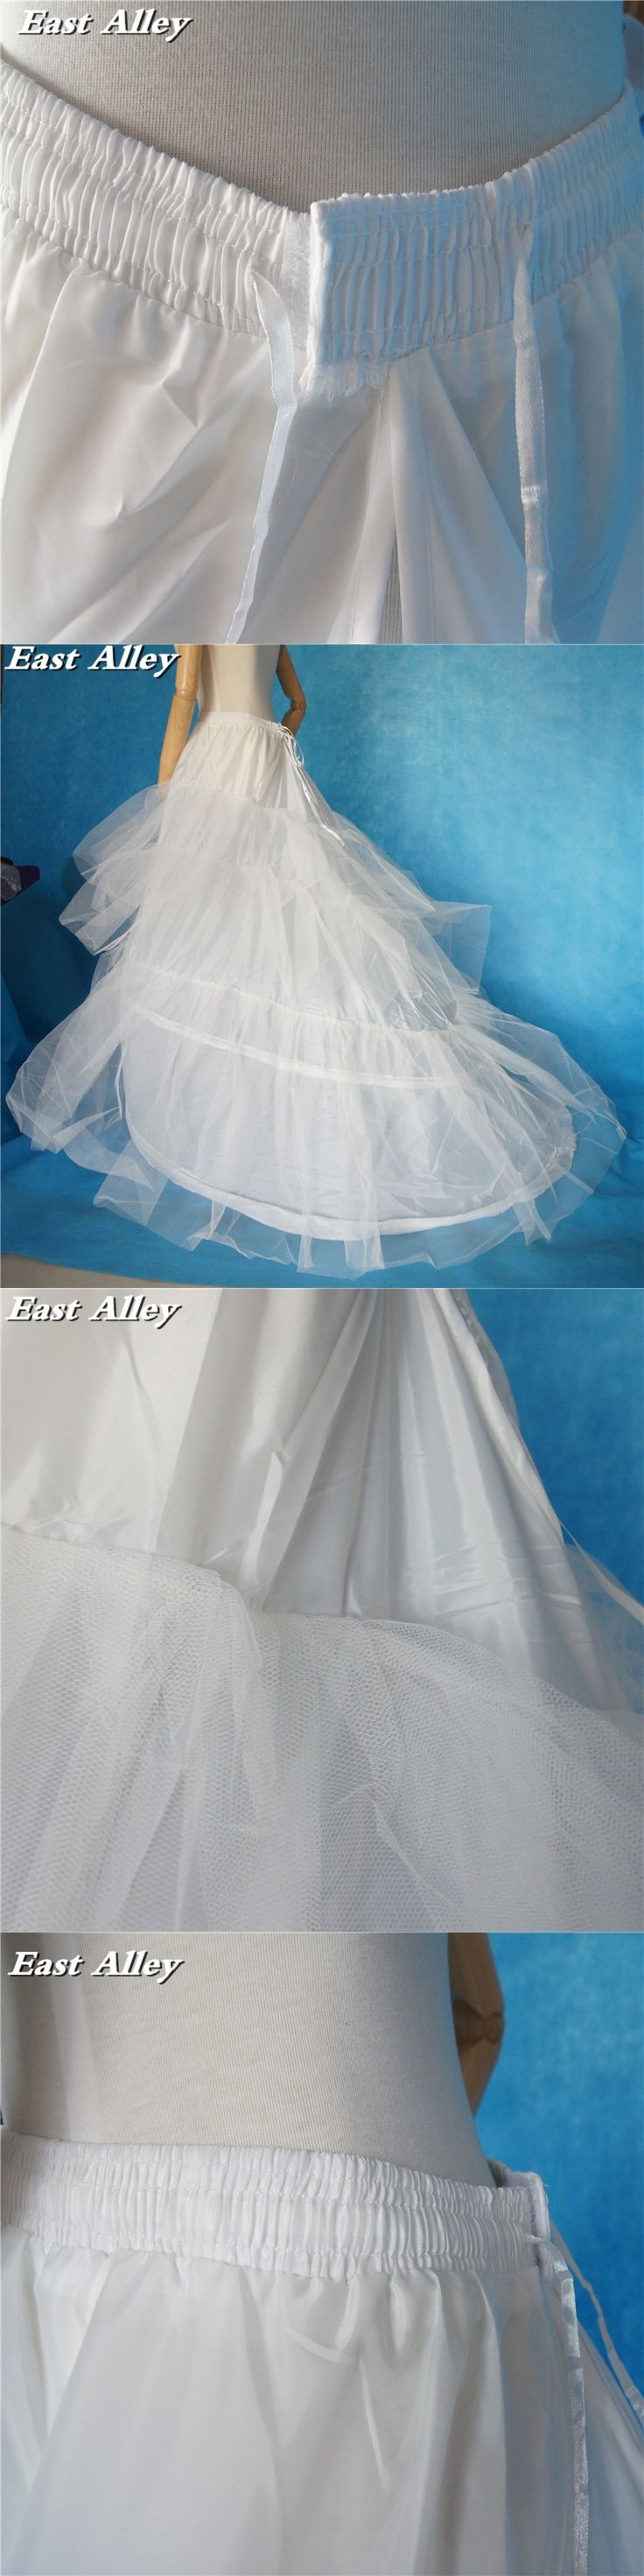 Plus size 2 Hoops  Ivory or White Wedding Gown Train Petticoat Crinolines Full Slips Underskirt Fit USA SIZE 16W to 24W